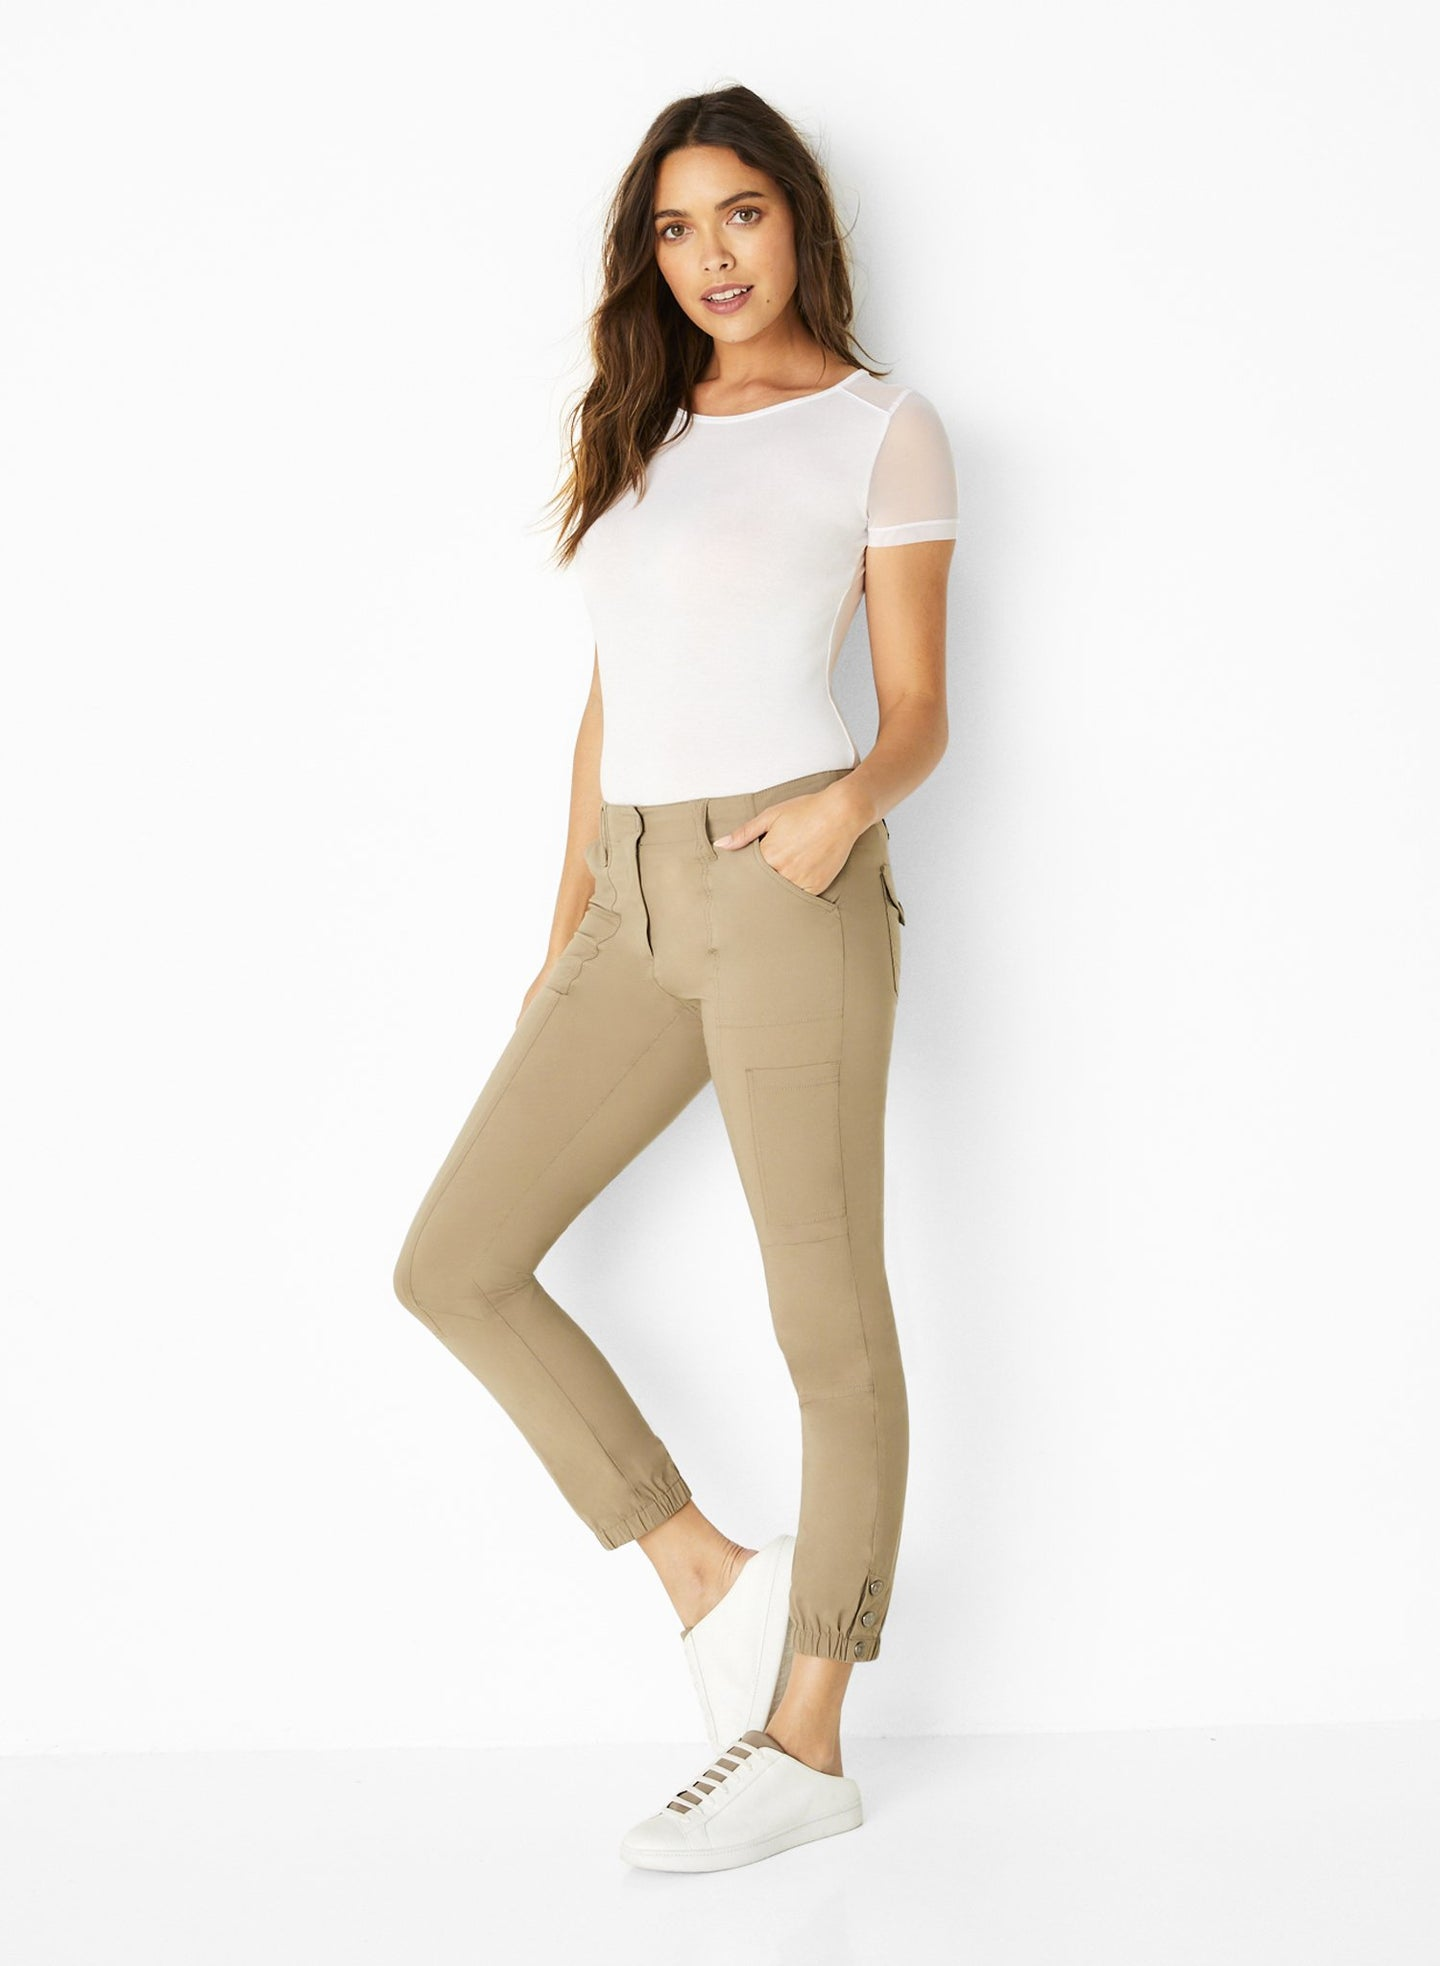 Slim fit Low-rise waistband Hidden zip-front closure with snap button Classic cargo pant design Slip pockets at the hips Cargo pockets at the legs Full-length relaxed legs with cuffs Wrinkle-free signature stretch fabric Imported: 59% Cotton /37% Polyester /4% Elastane UV Protection: 40+ Made in Italy